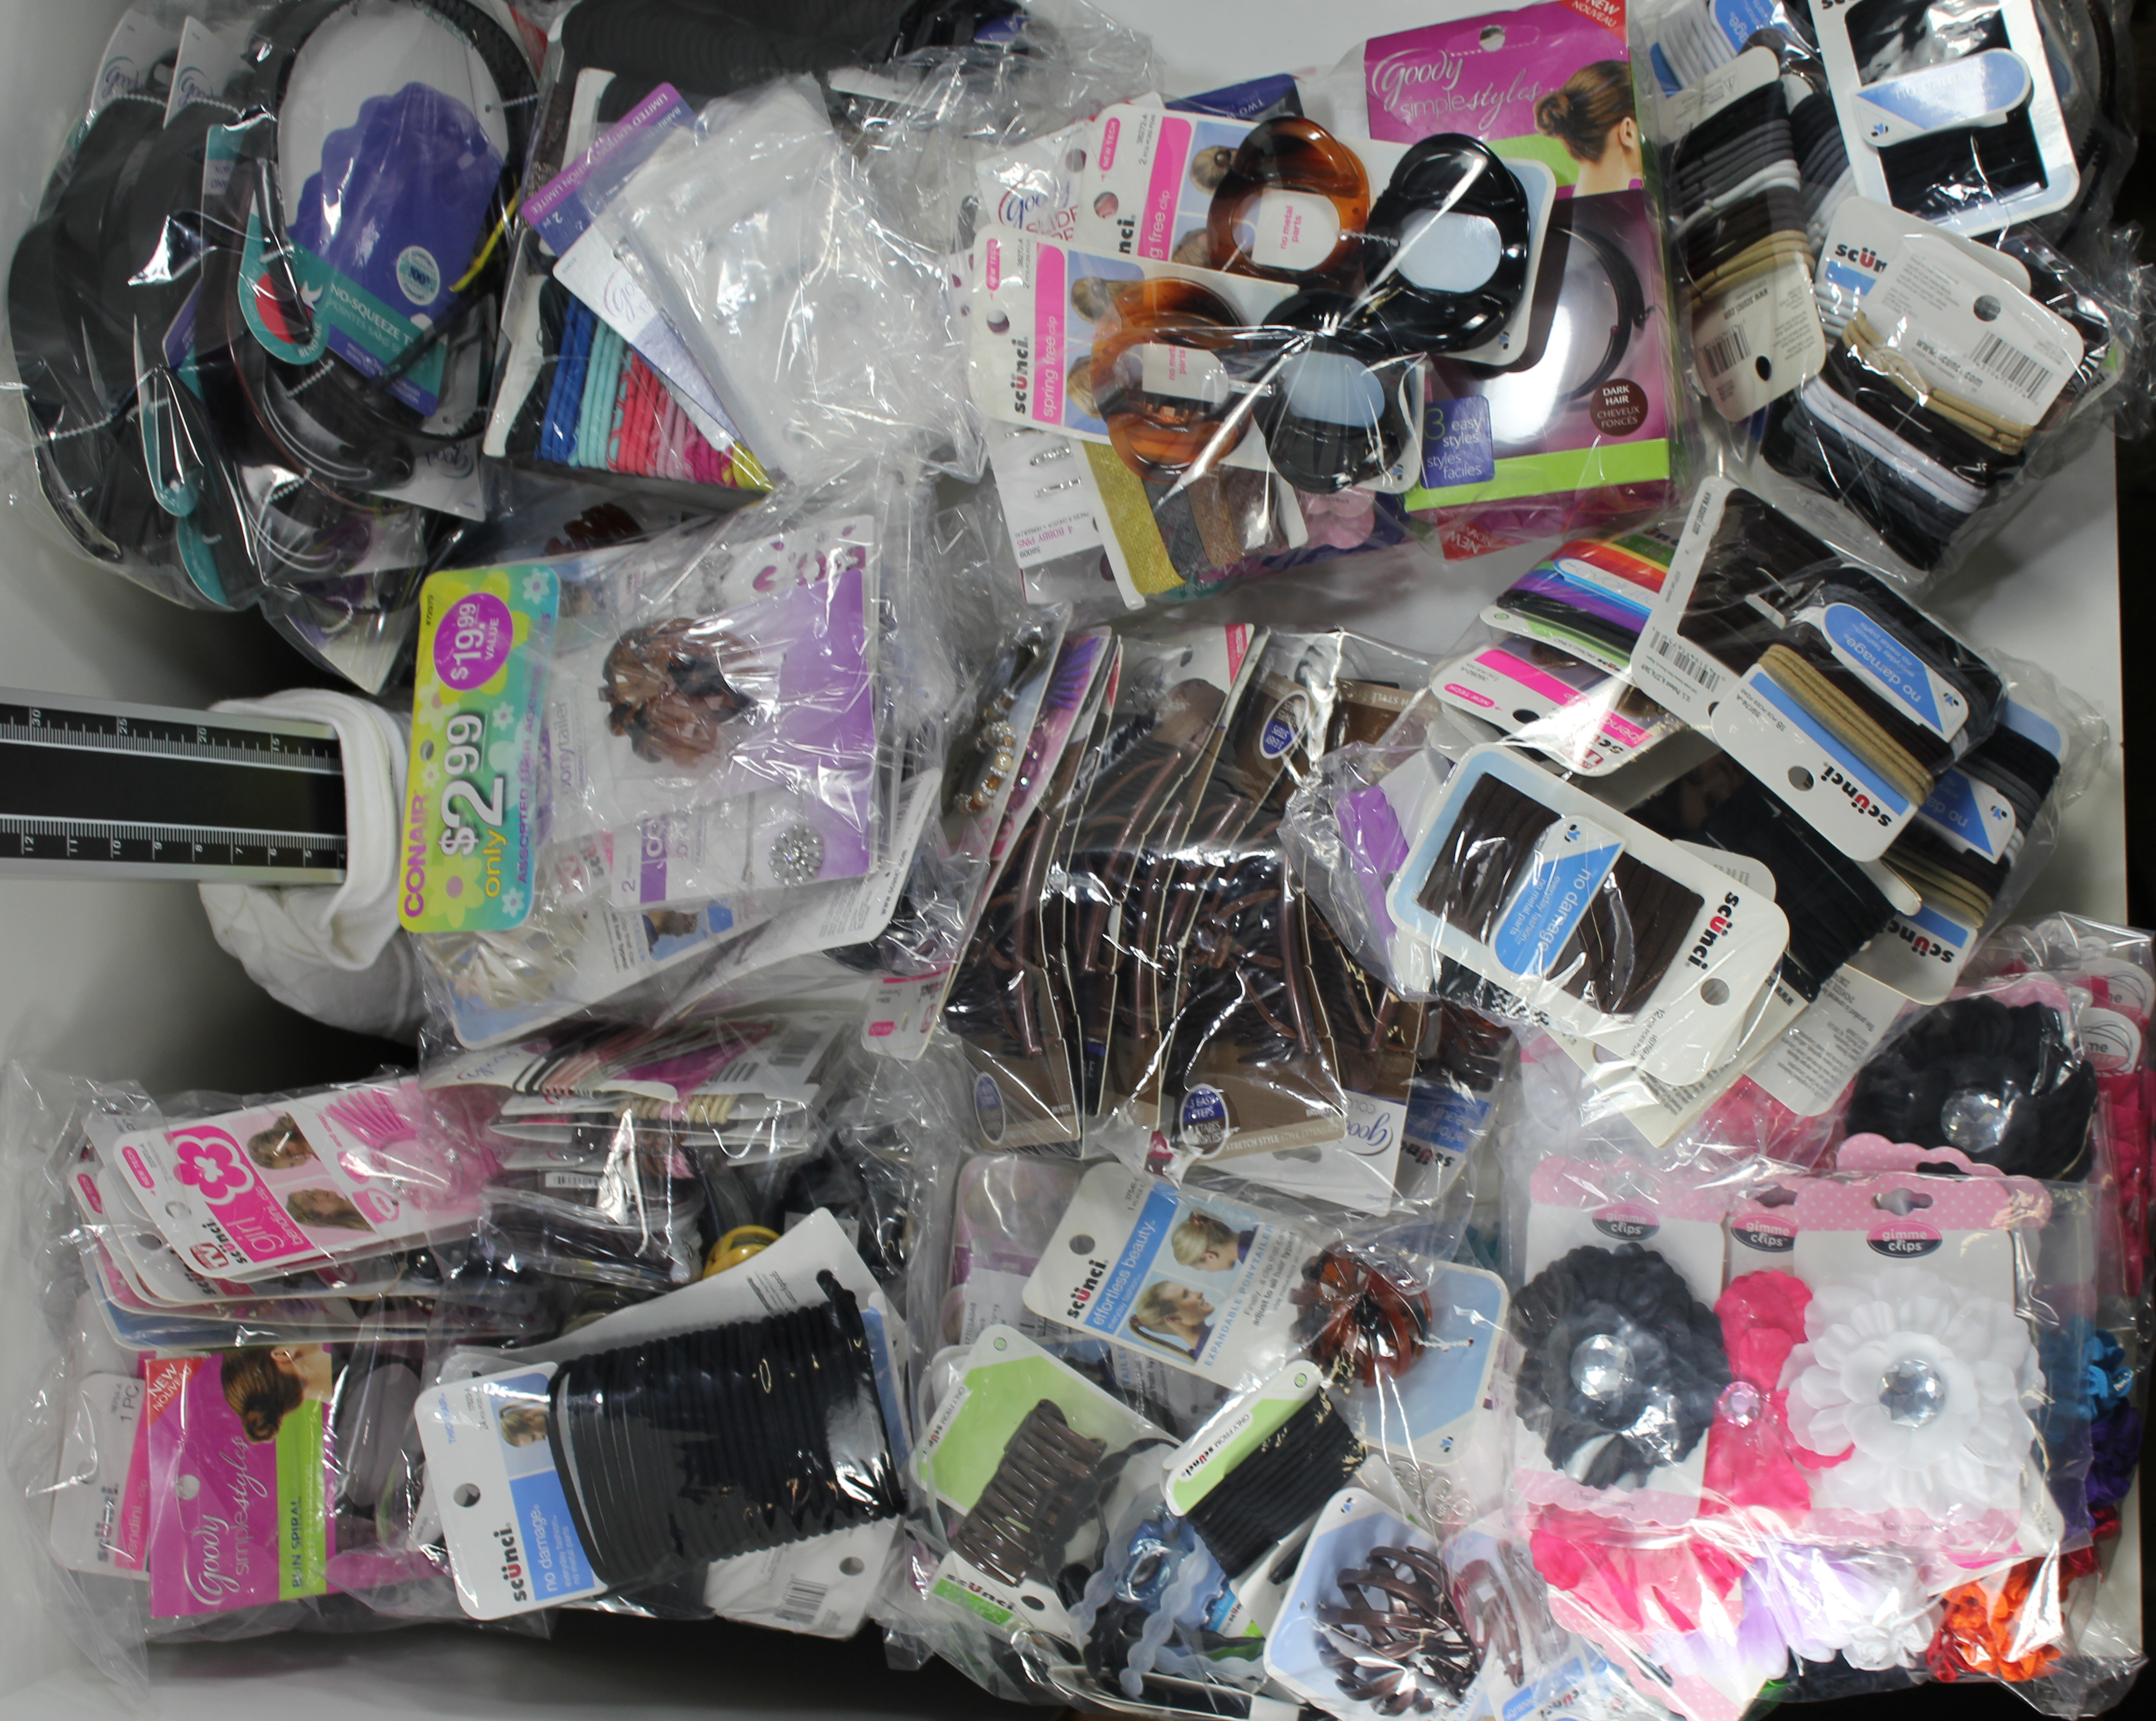 250 units Brand Name Hair Accessory Mix-Revlon, Goody, Scunci, Conair, Vidal Sassoon, Karina